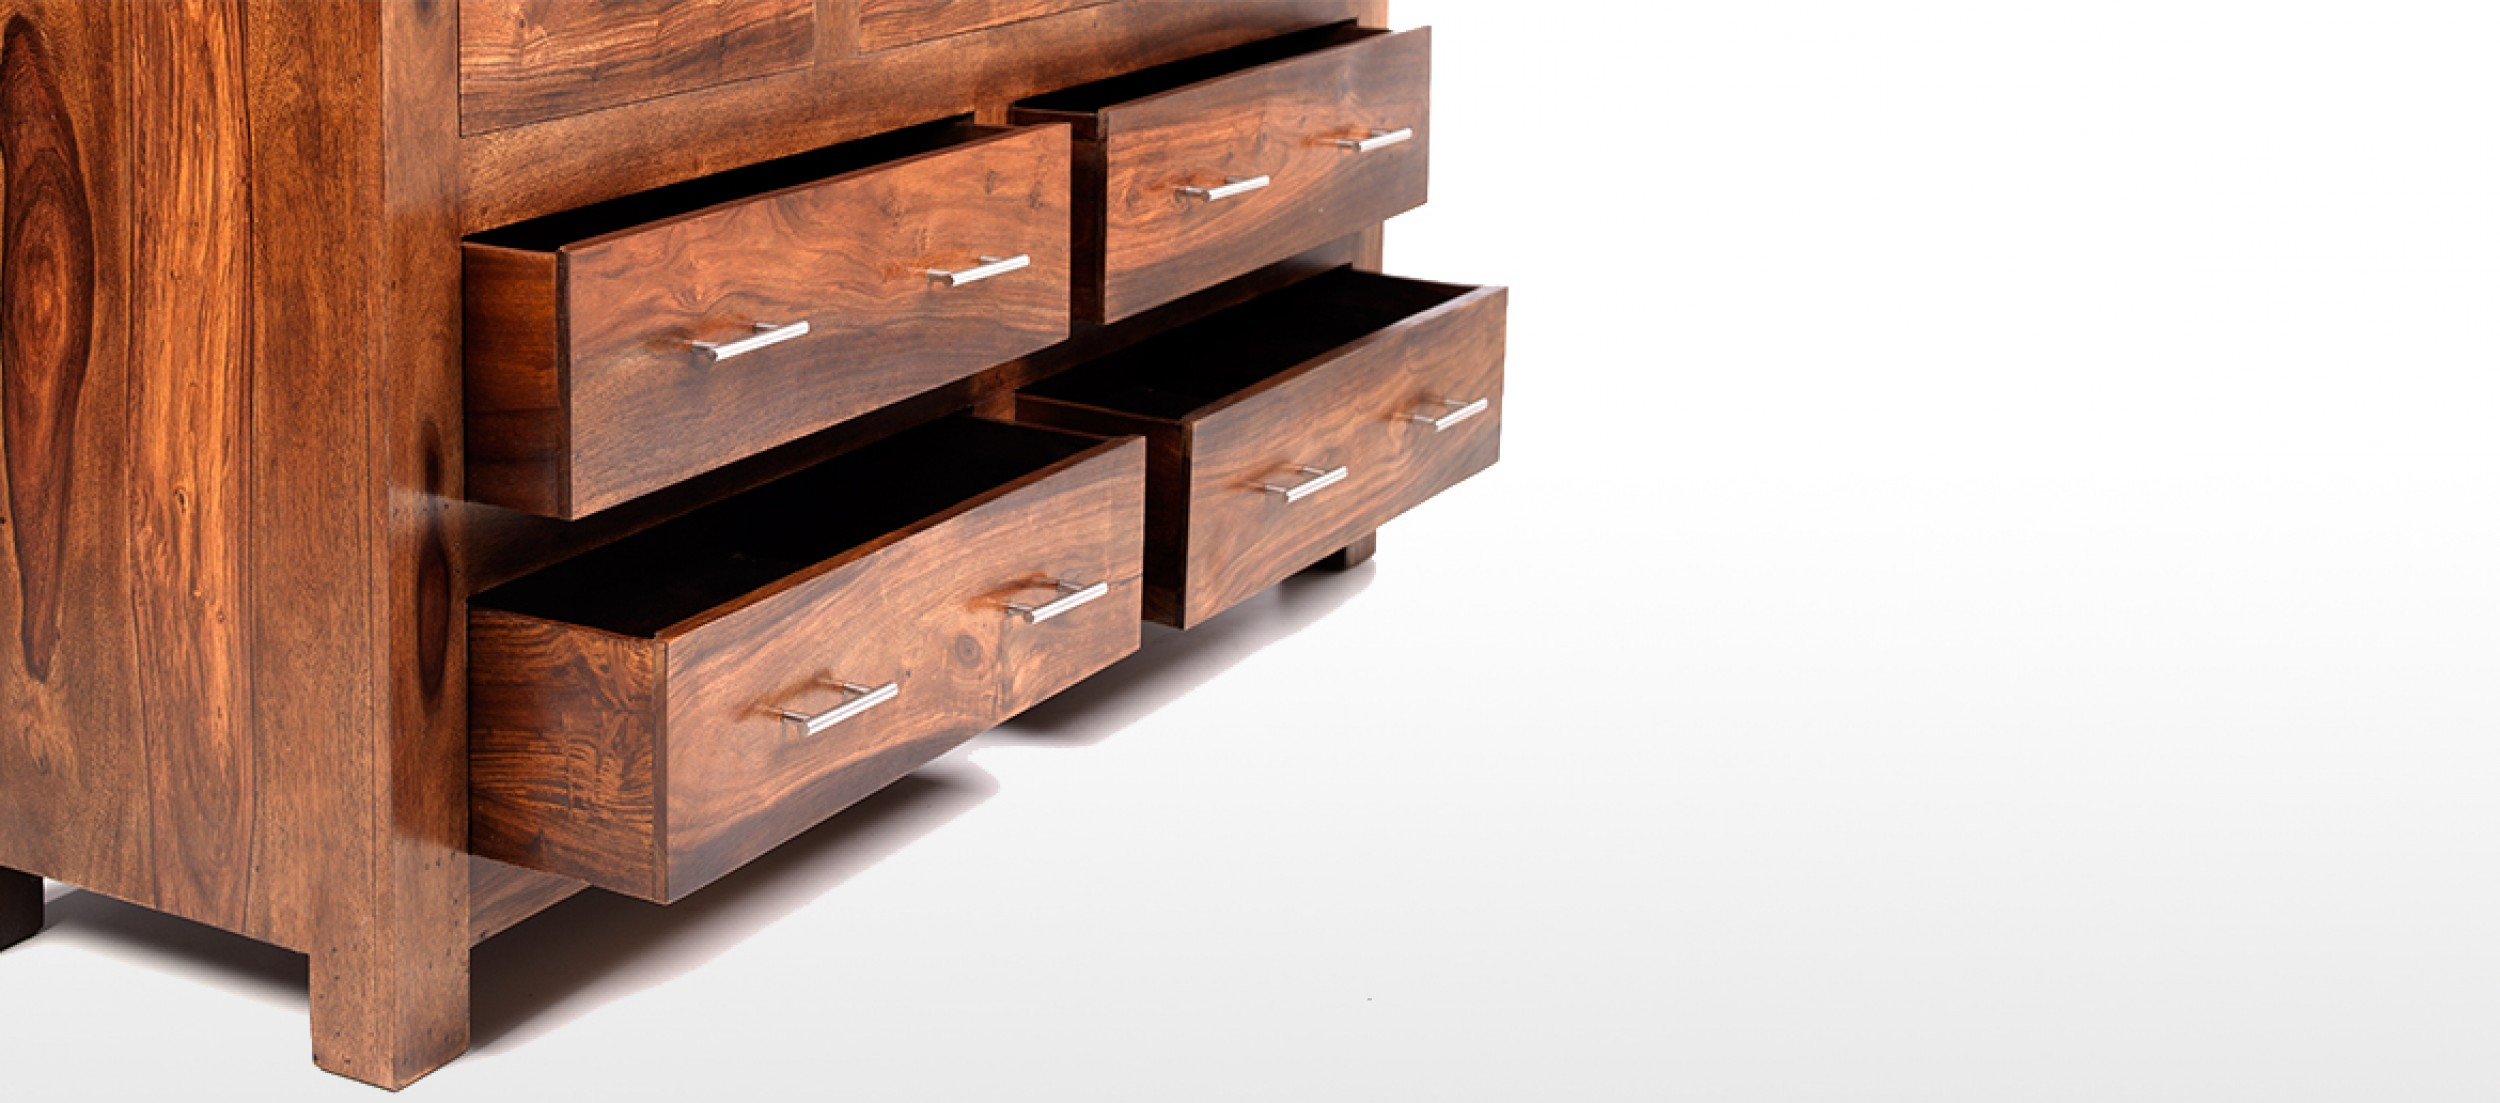 Cube sheesham drawer chest of drawers quercus living